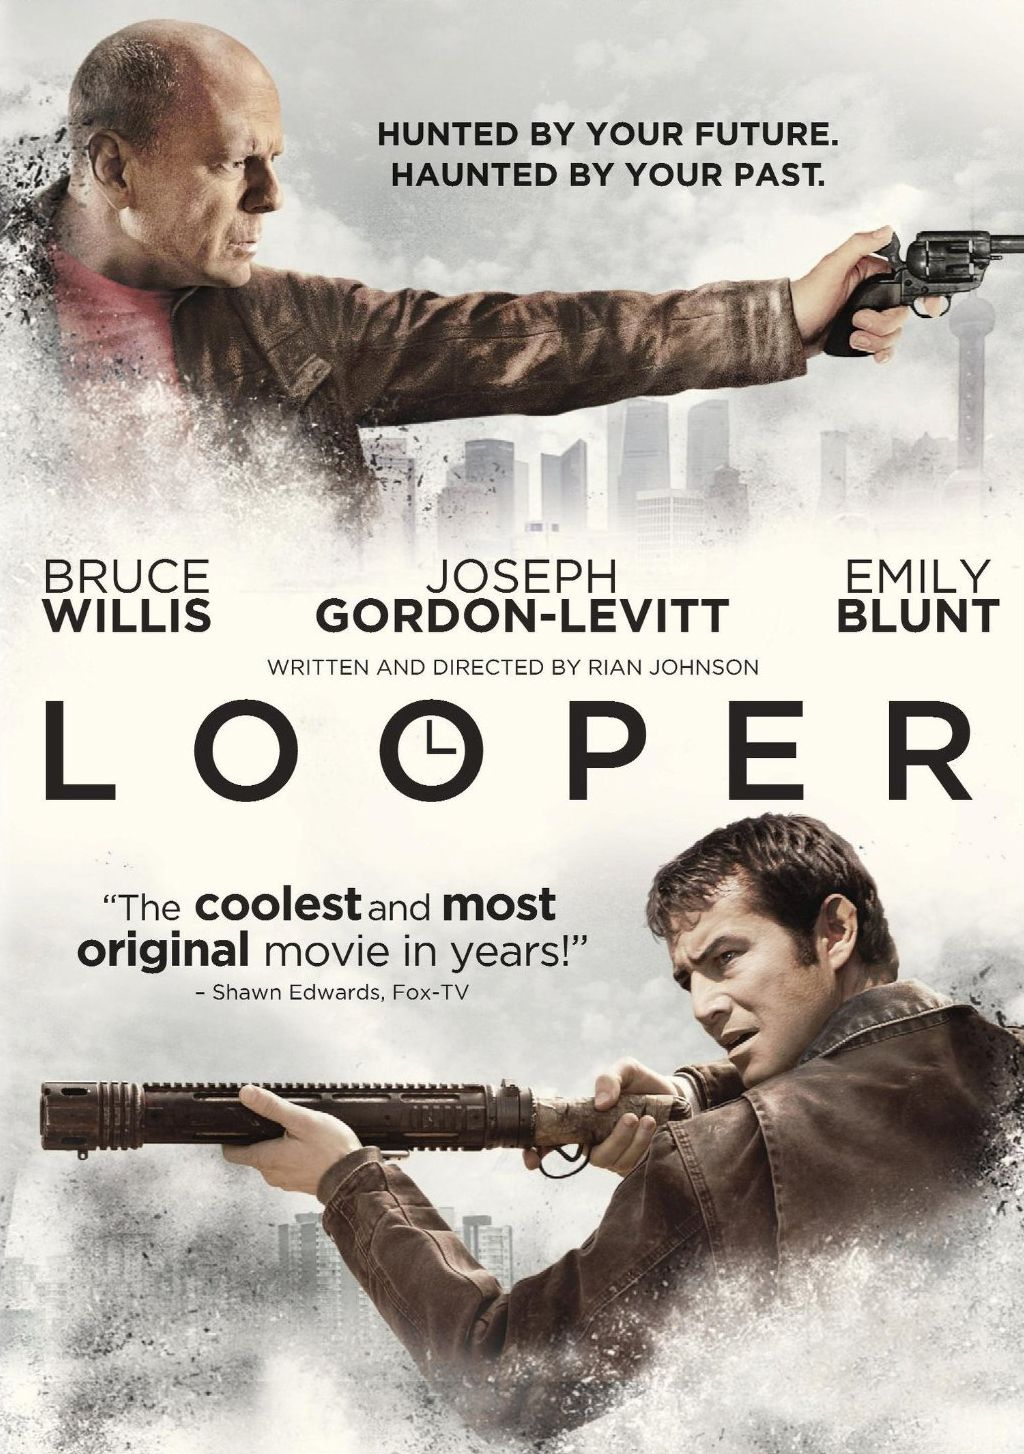 Publicity still for Looper